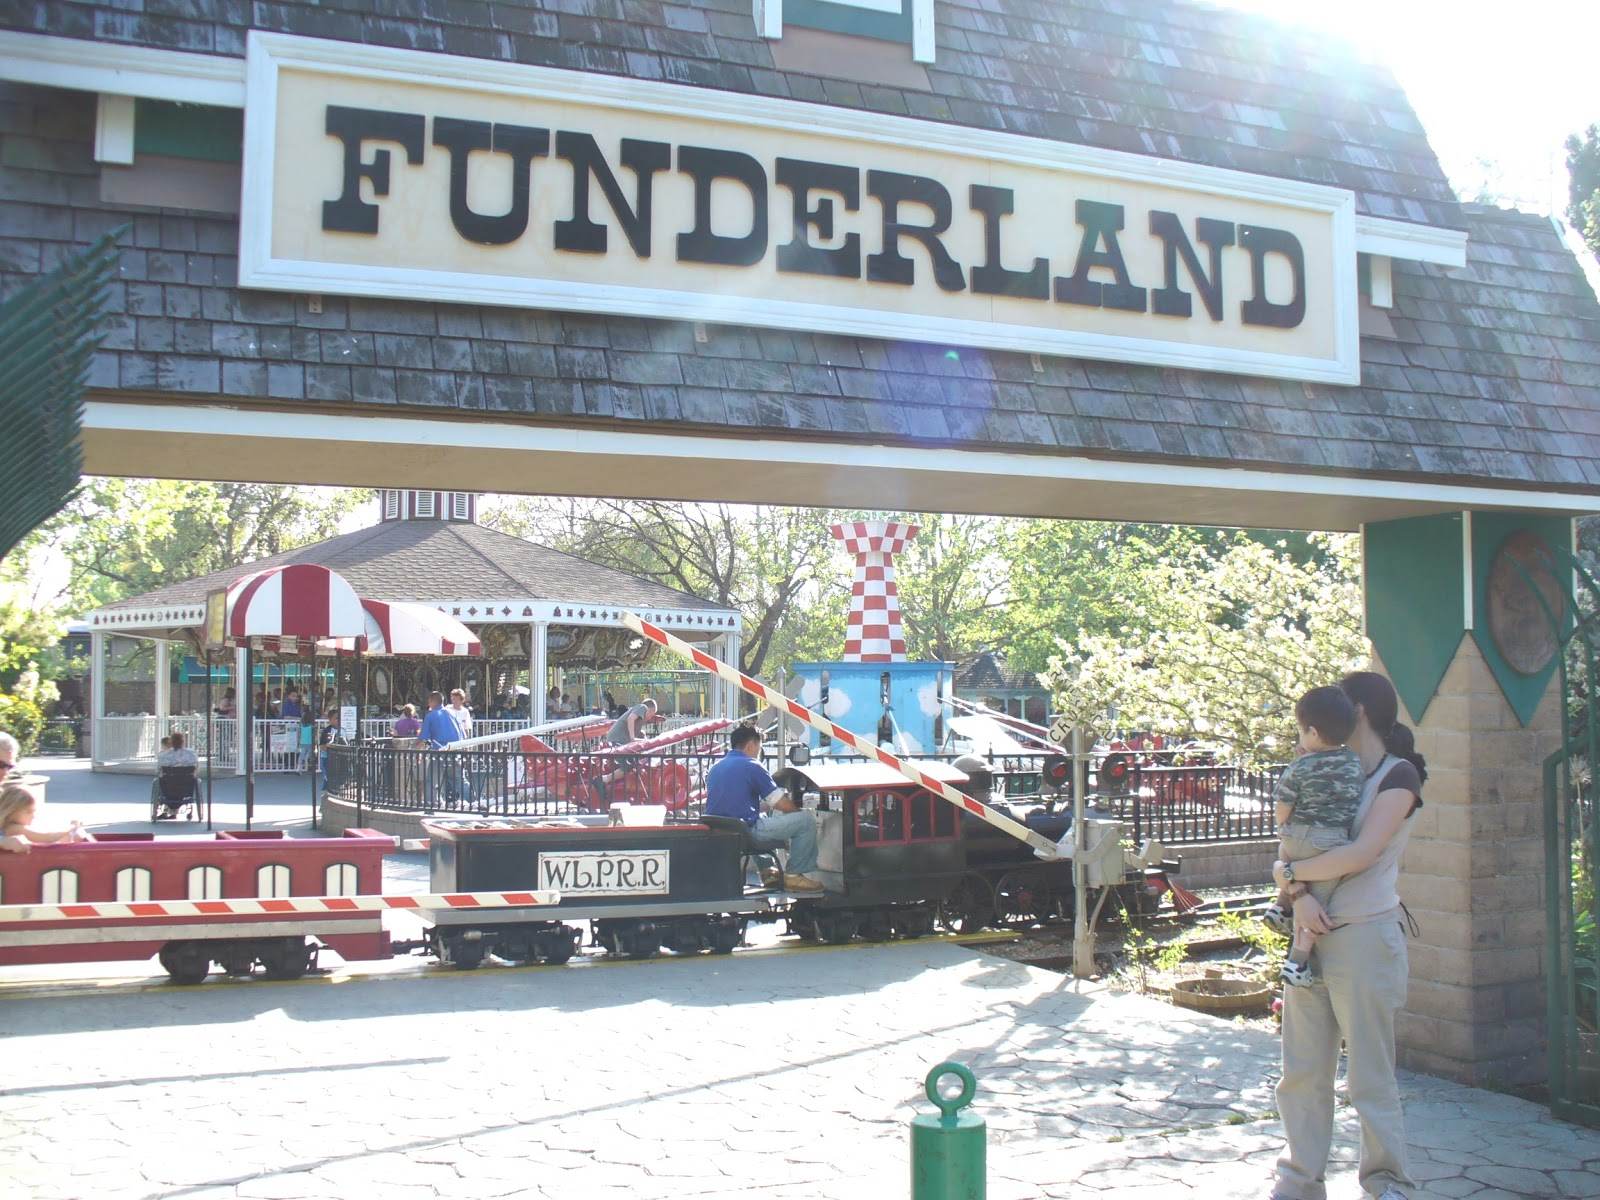 Funderland discount coupons